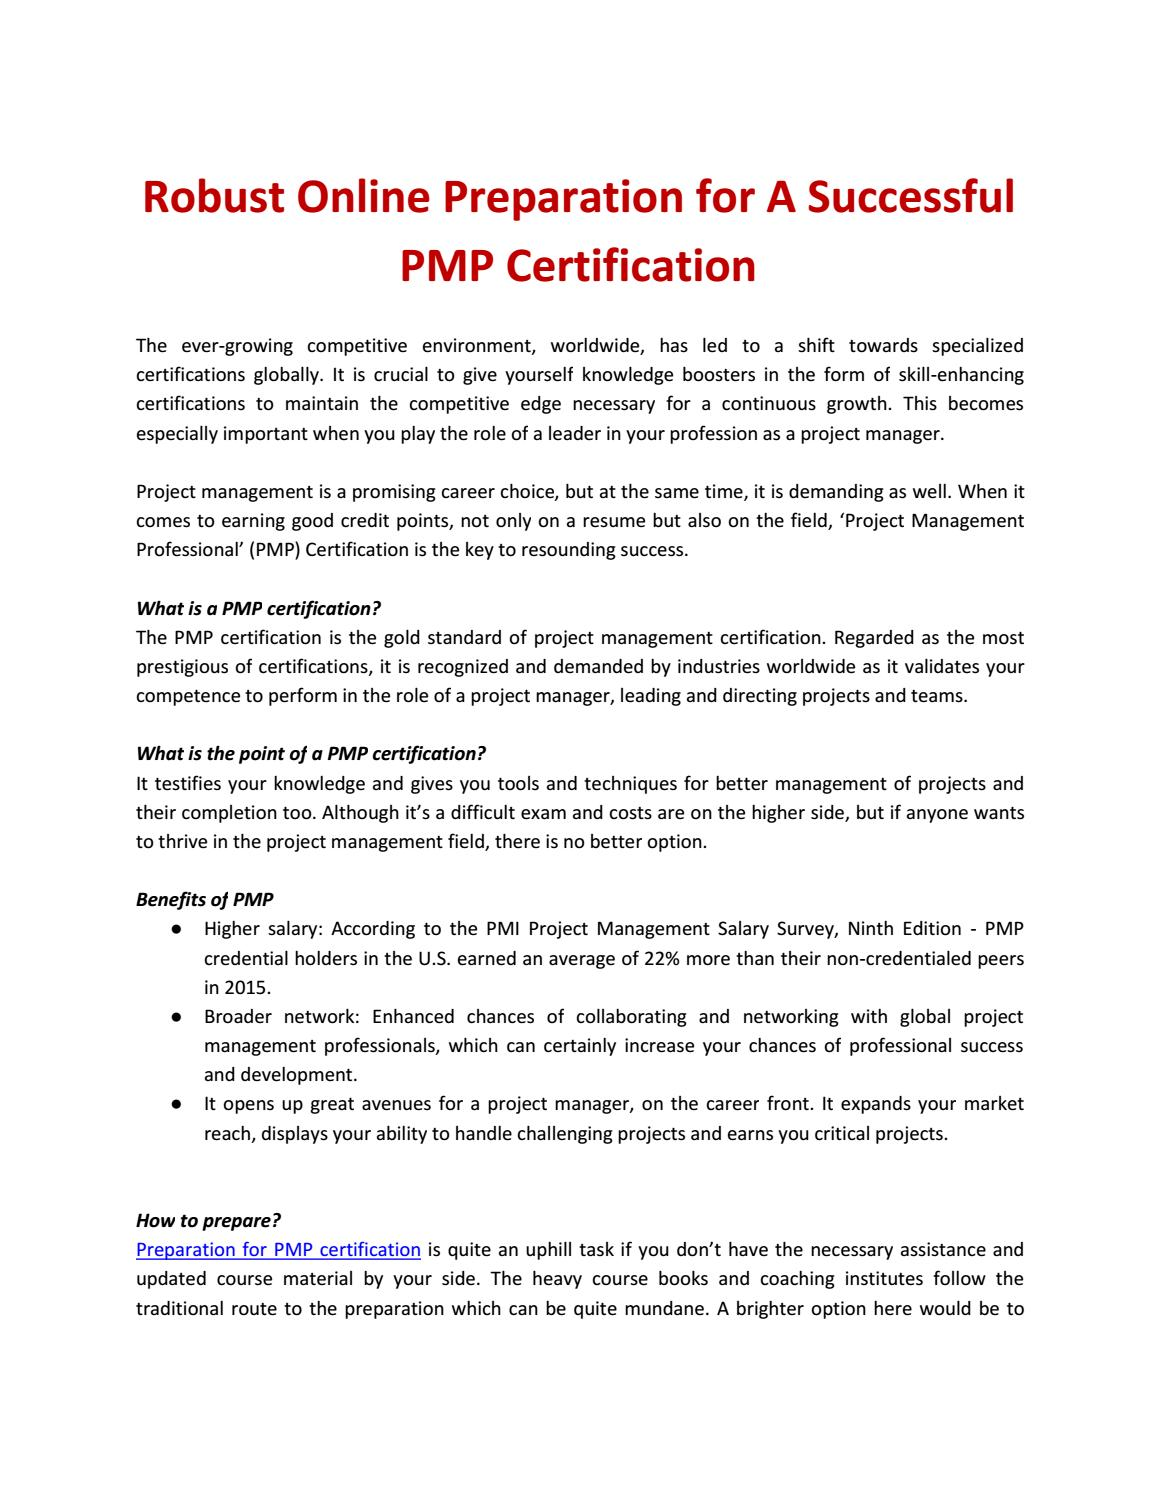 Robust Online Preparation For A Successful Pmp Certification By